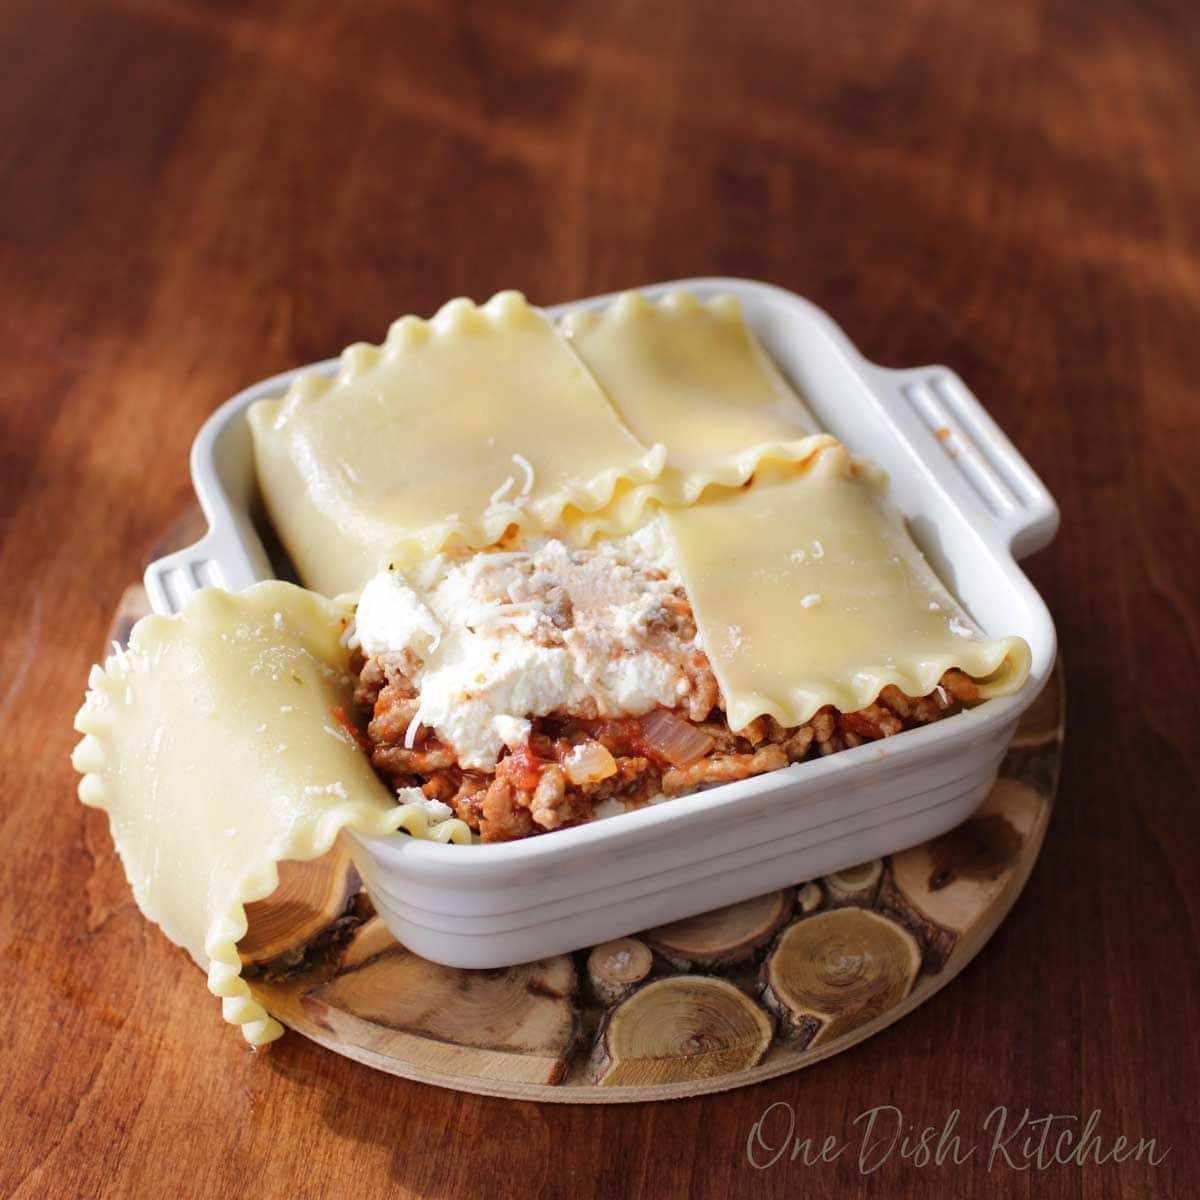 Adding the meat filling to a mini lasagna and folding the noodles over the mixture